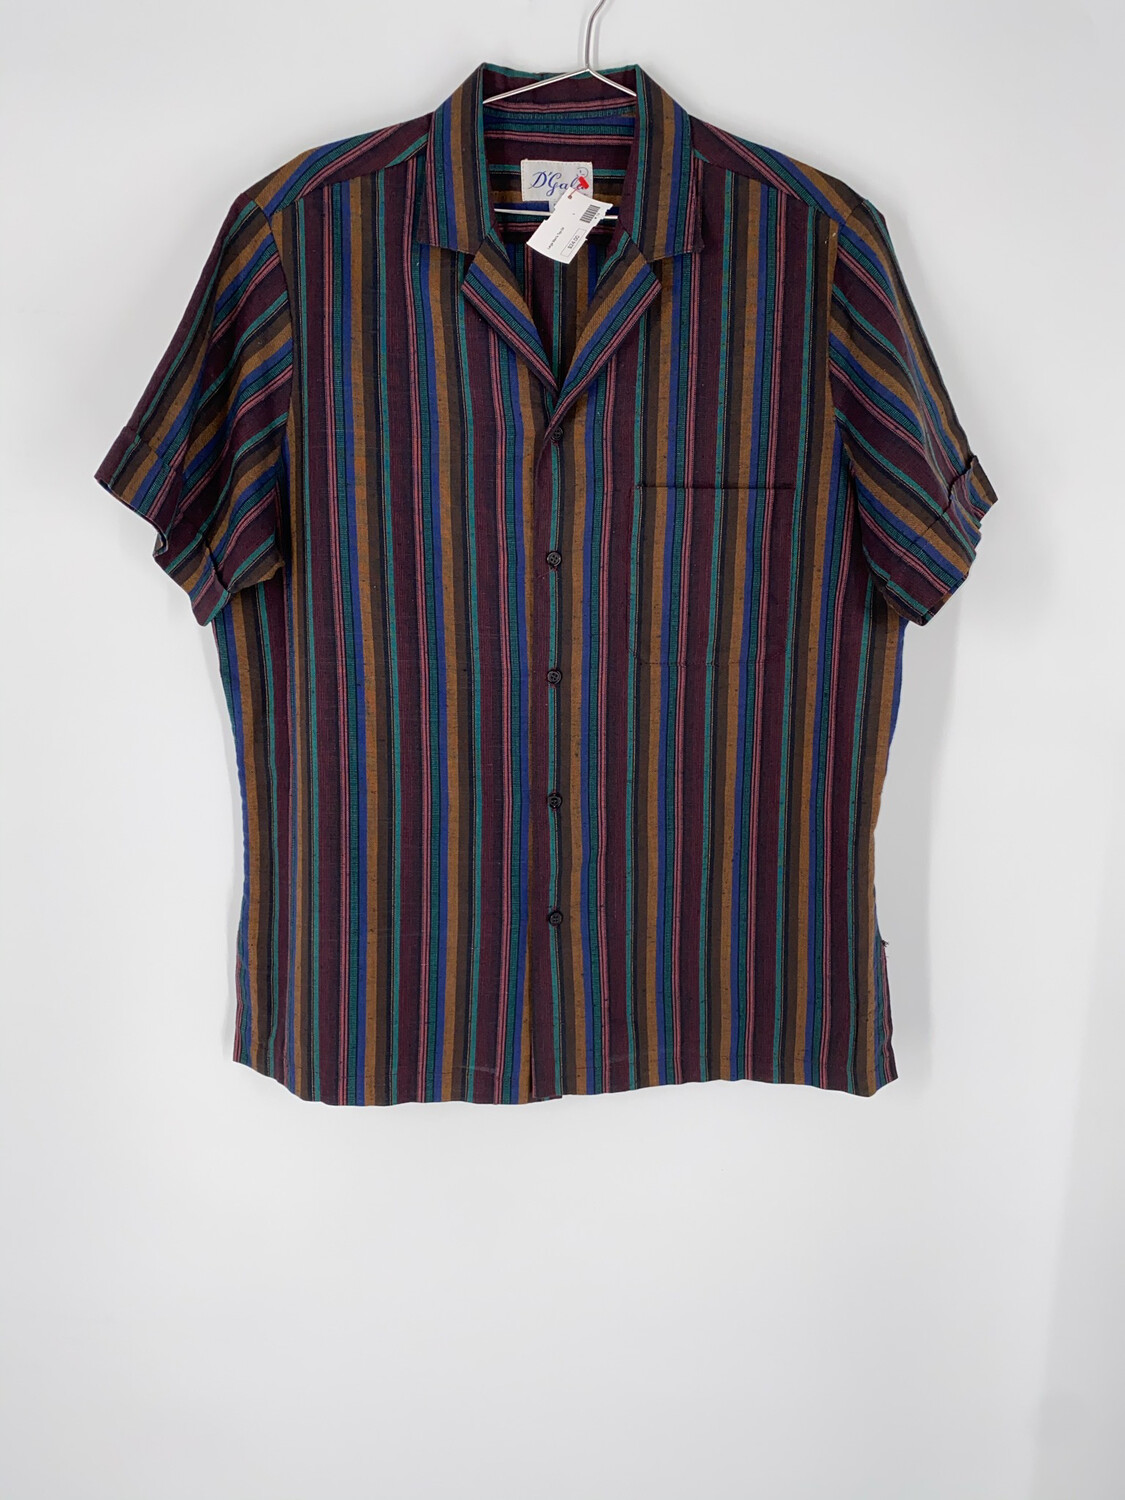 D'Gala Button Up Size Large